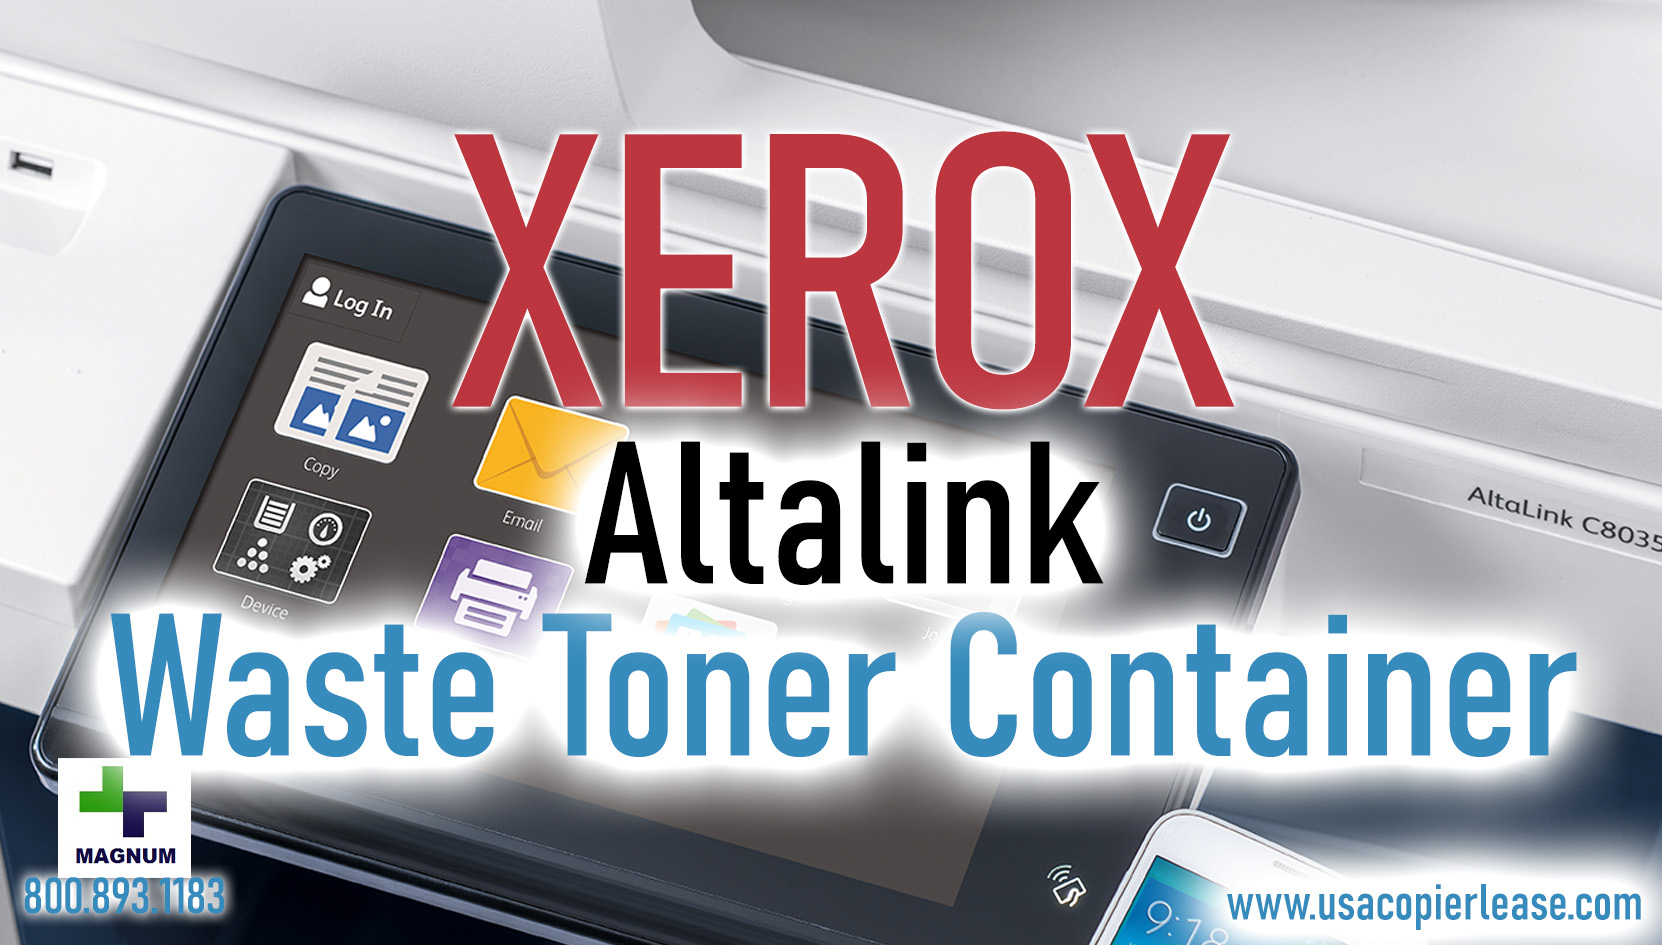 How To: Empty Waste Toner Container Xerox Altalink C Series